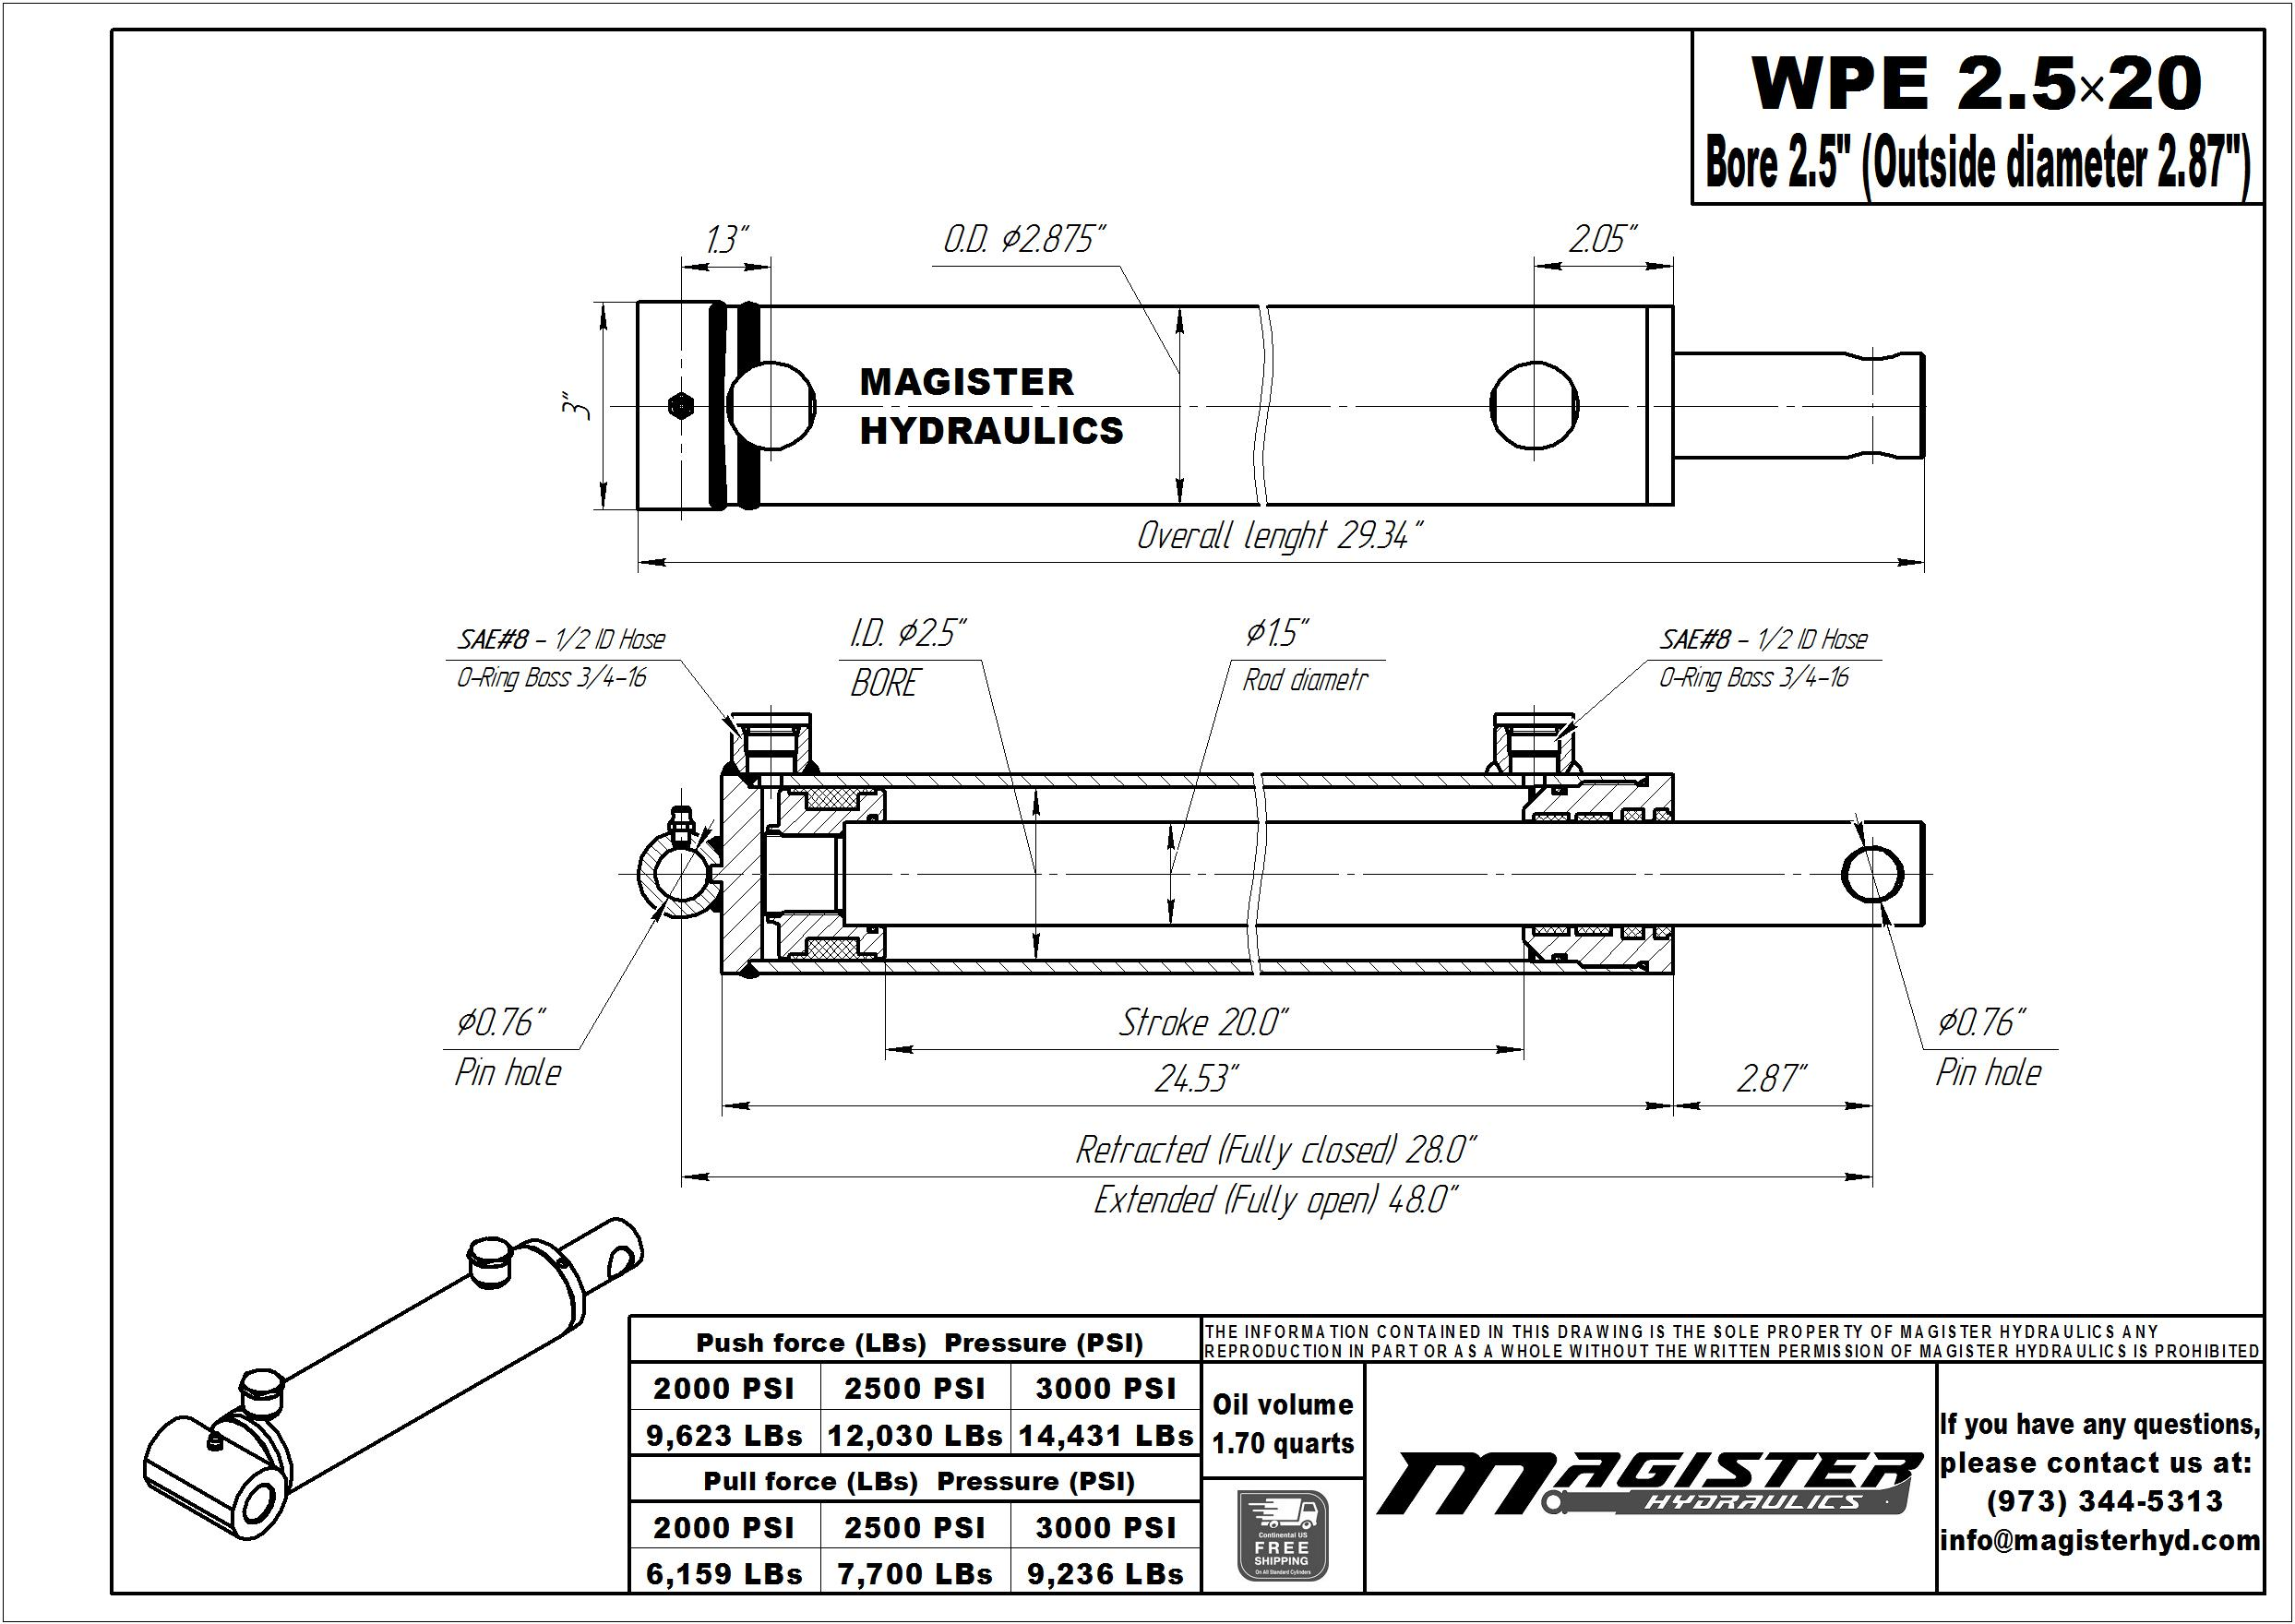 2.5 bore x 20 stroke hydraulic cylinder, welded pin eye double acting cylinder   Magister Hydraulics